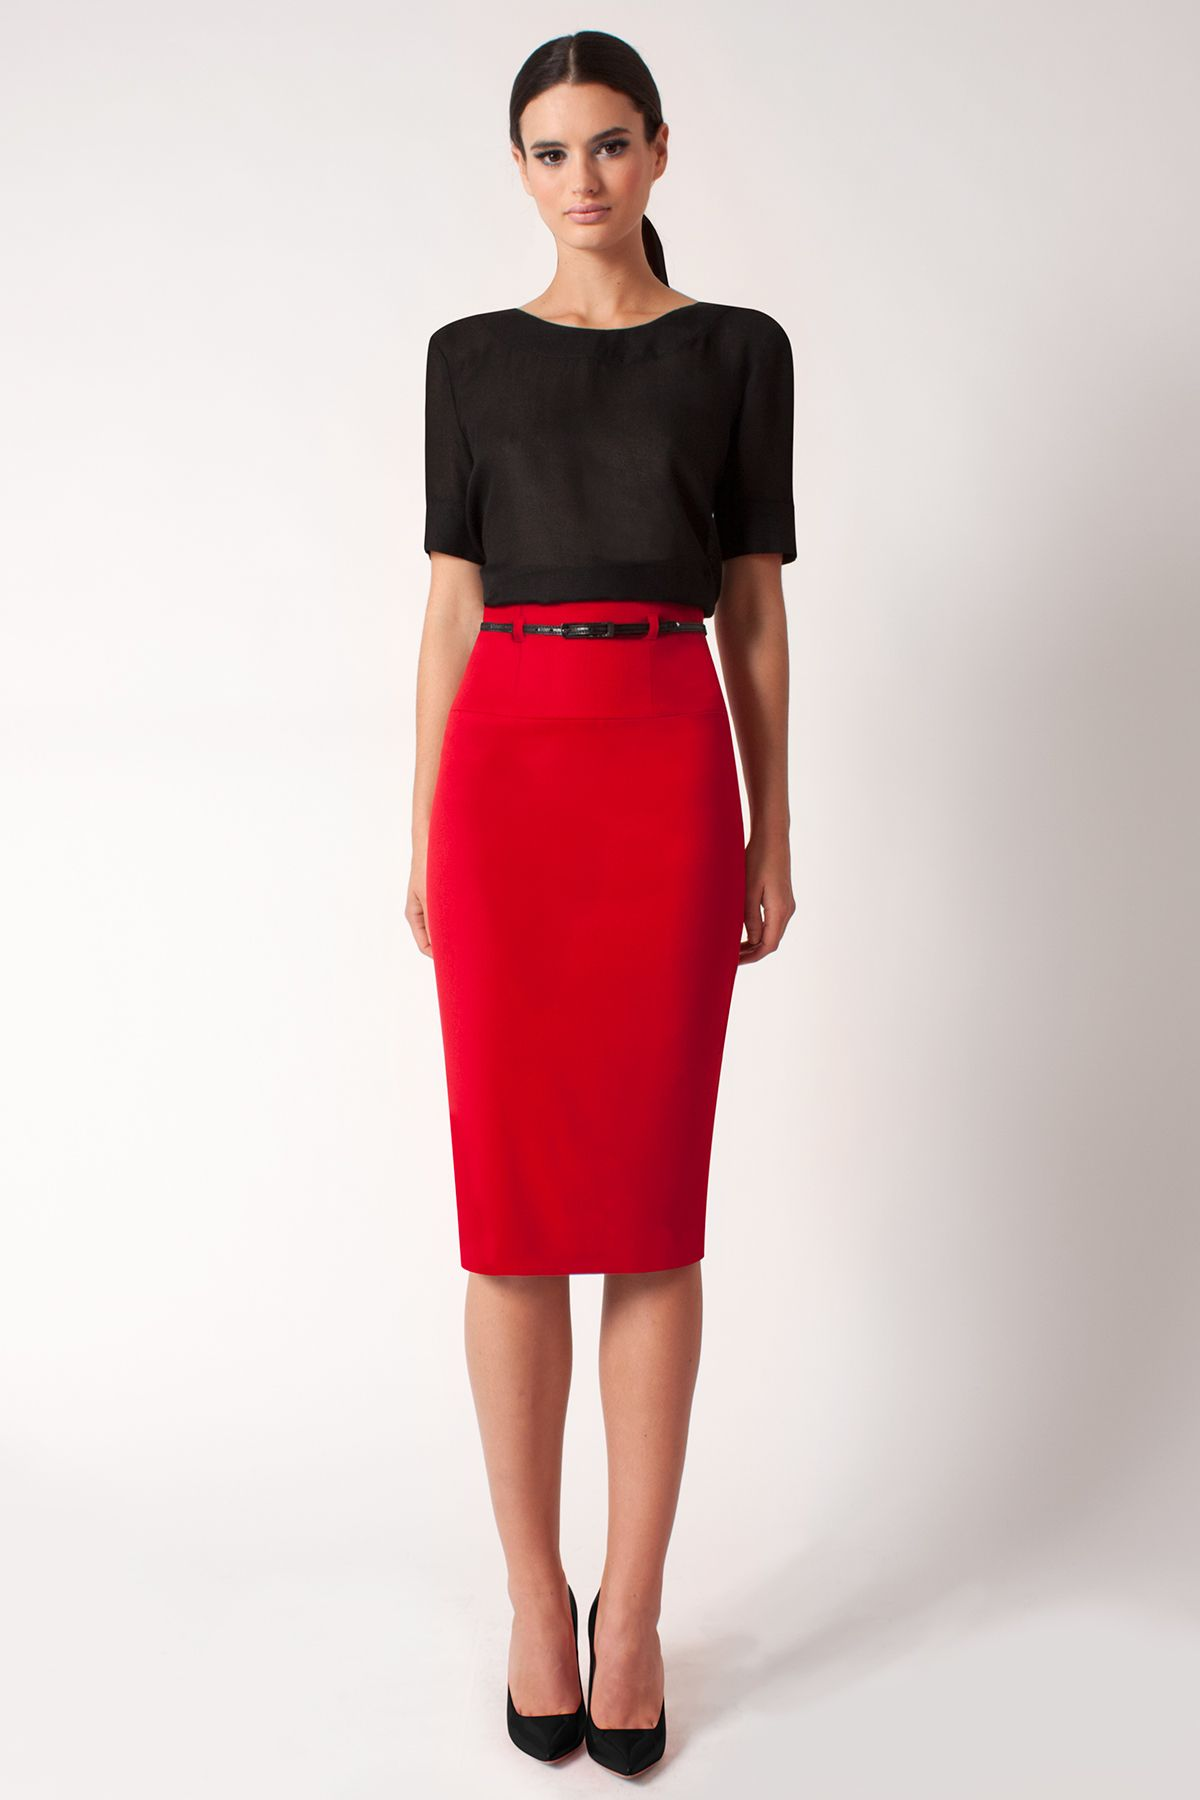 b12c2c297 70 Stylish Pencil Skirt outfit examples for you | Sassy clothes ...